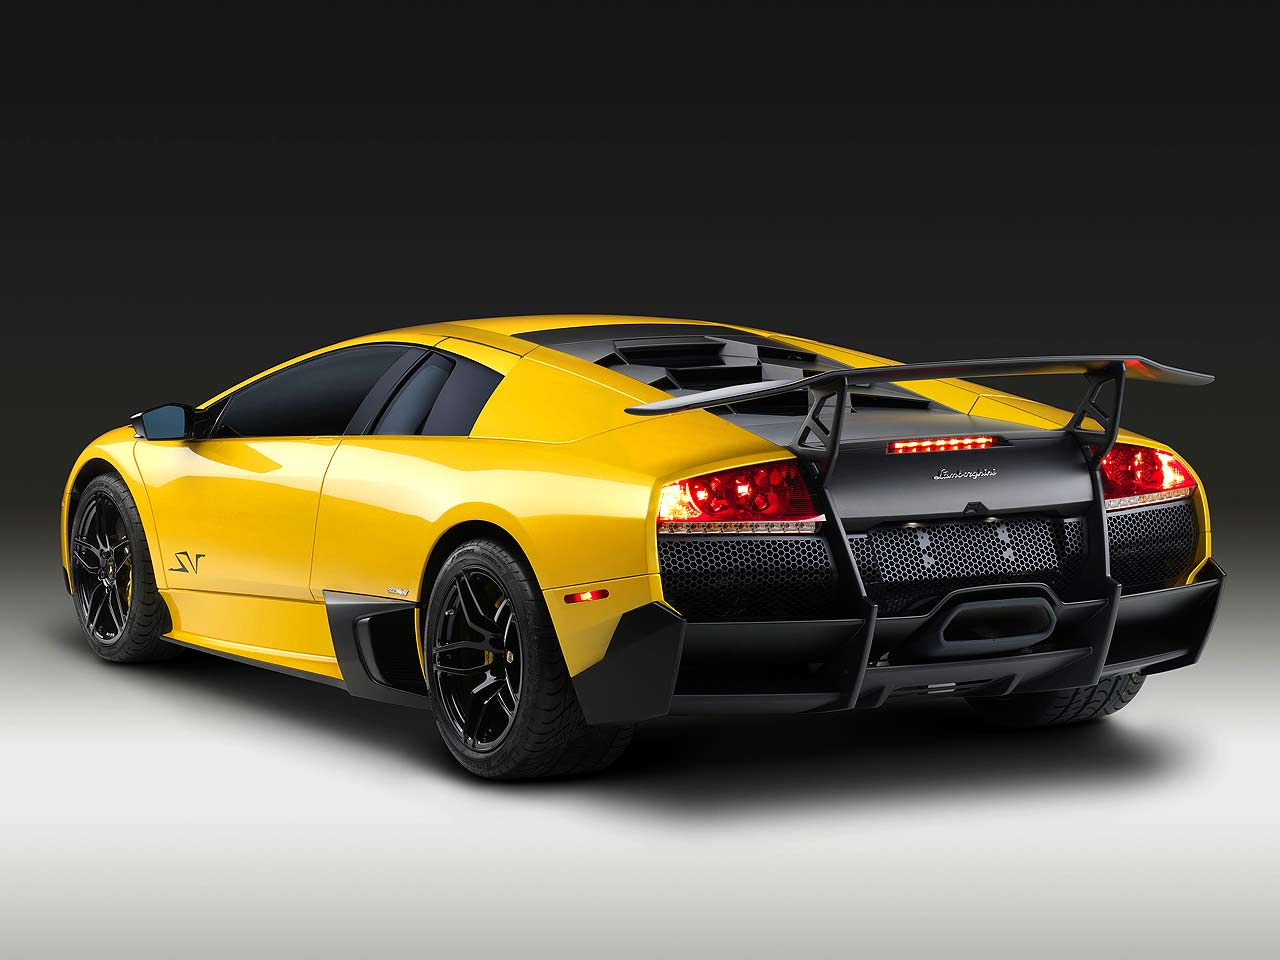 Lamborghini Murcielago Lp670 4 Superveloce Brutale HD Wallpapers Download free images and photos [musssic.tk]